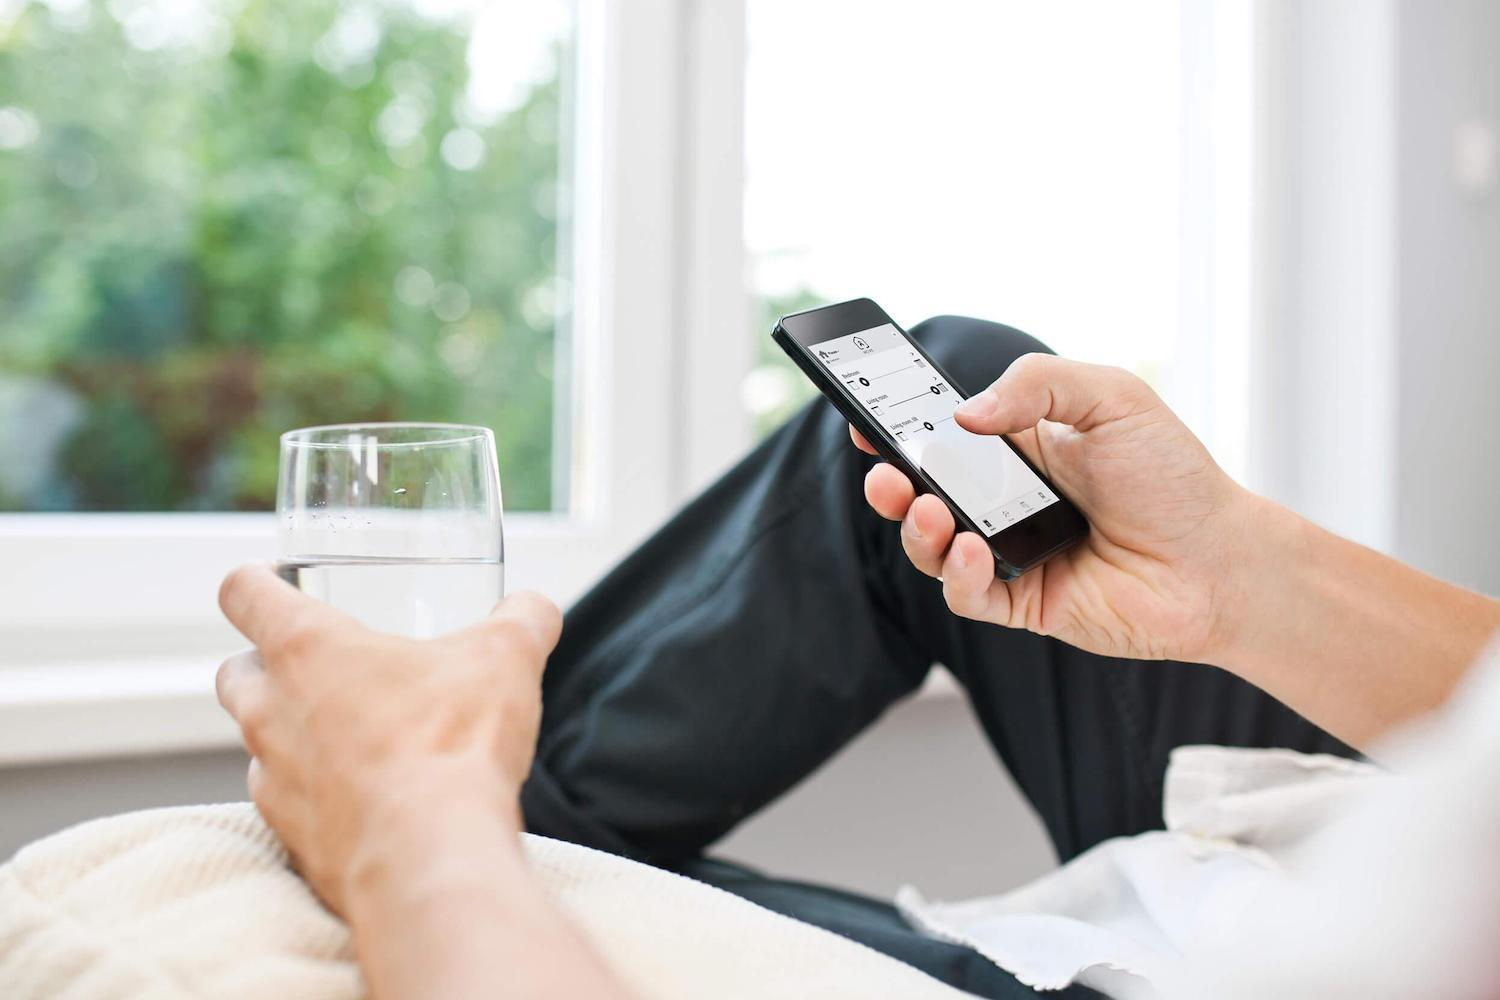 A man relaxes in a comfortable living room chair while using the MOVE app on his mobile phone